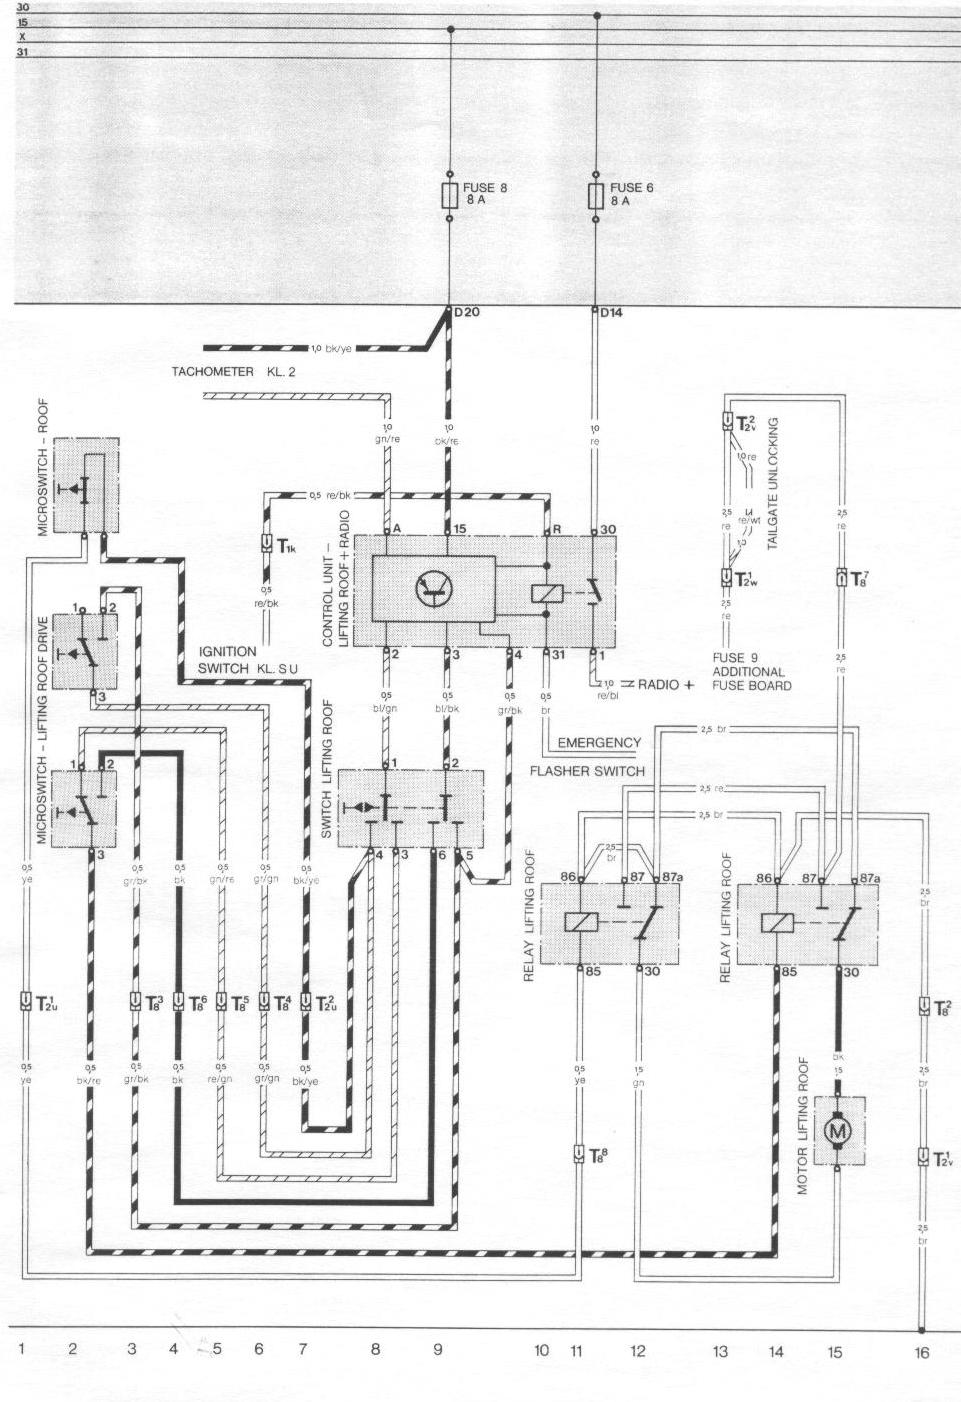 944_84_sunroof porsche 944 wiring diagram porsche 944 sunroof wiring diagram porsche 914 fuse box diagram at soozxer.org